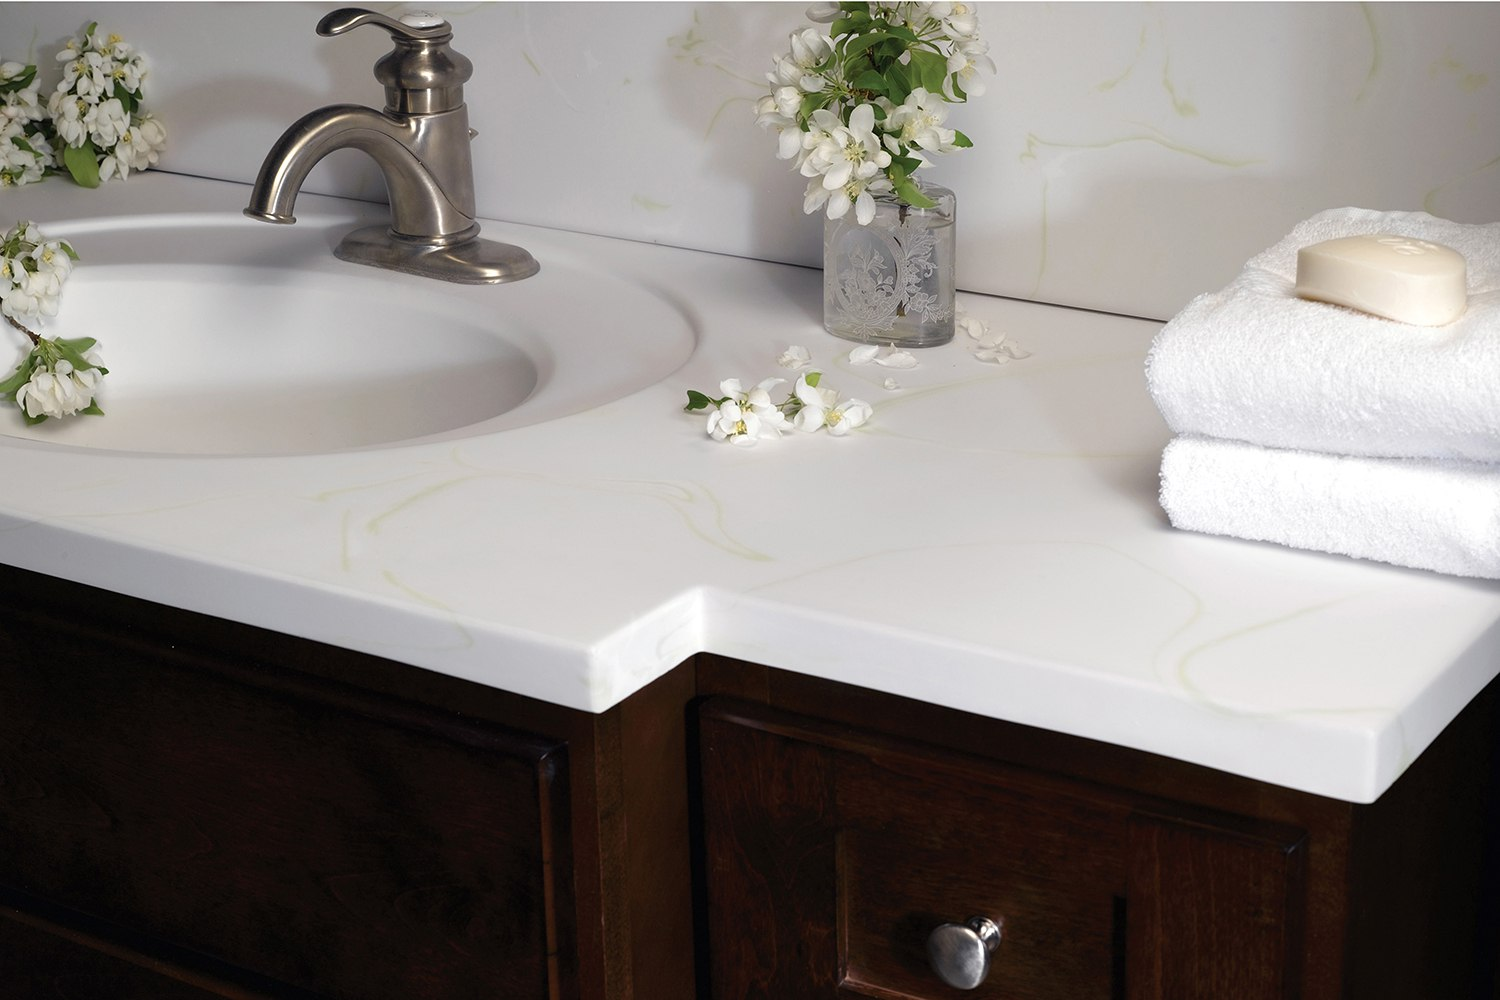 Custom Bathroom Vanities Michigan custom bathroom vanity tops - home design ideas and pictures